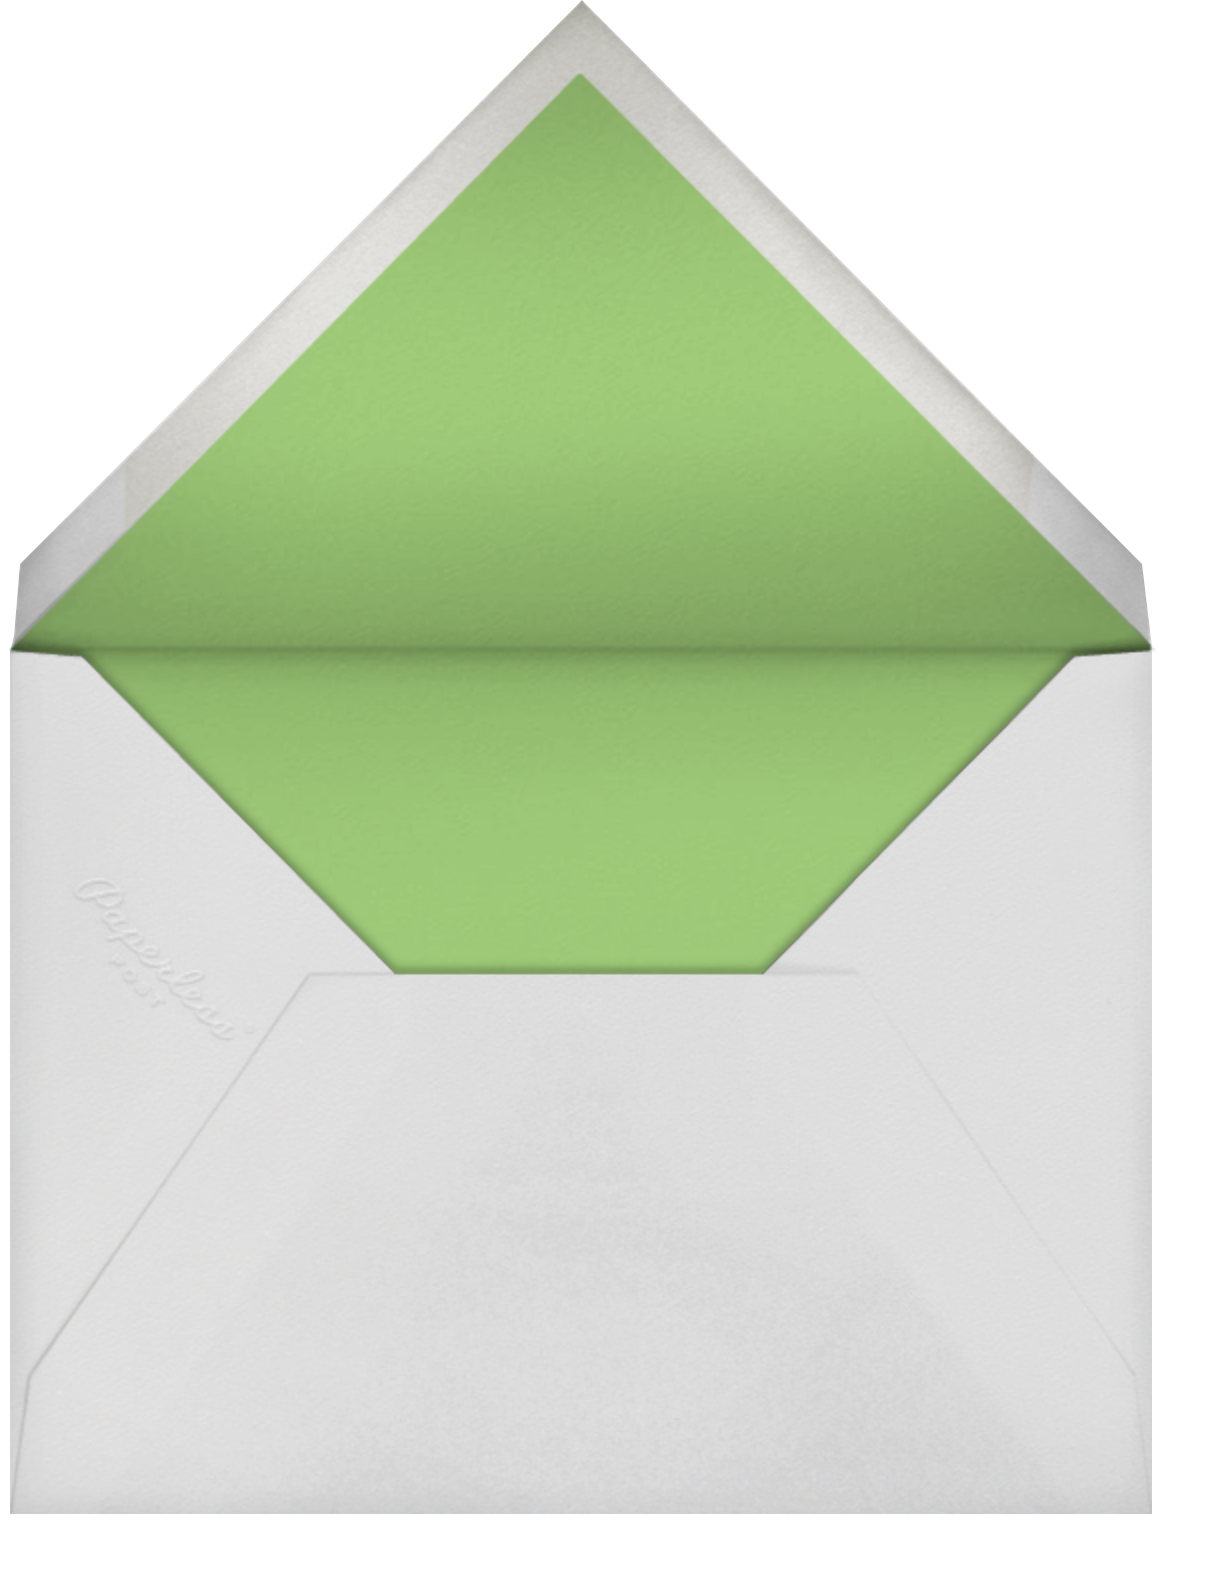 Antique Press- Cream with Emerald (Horizontal) - Paperless Post - General - envelope back